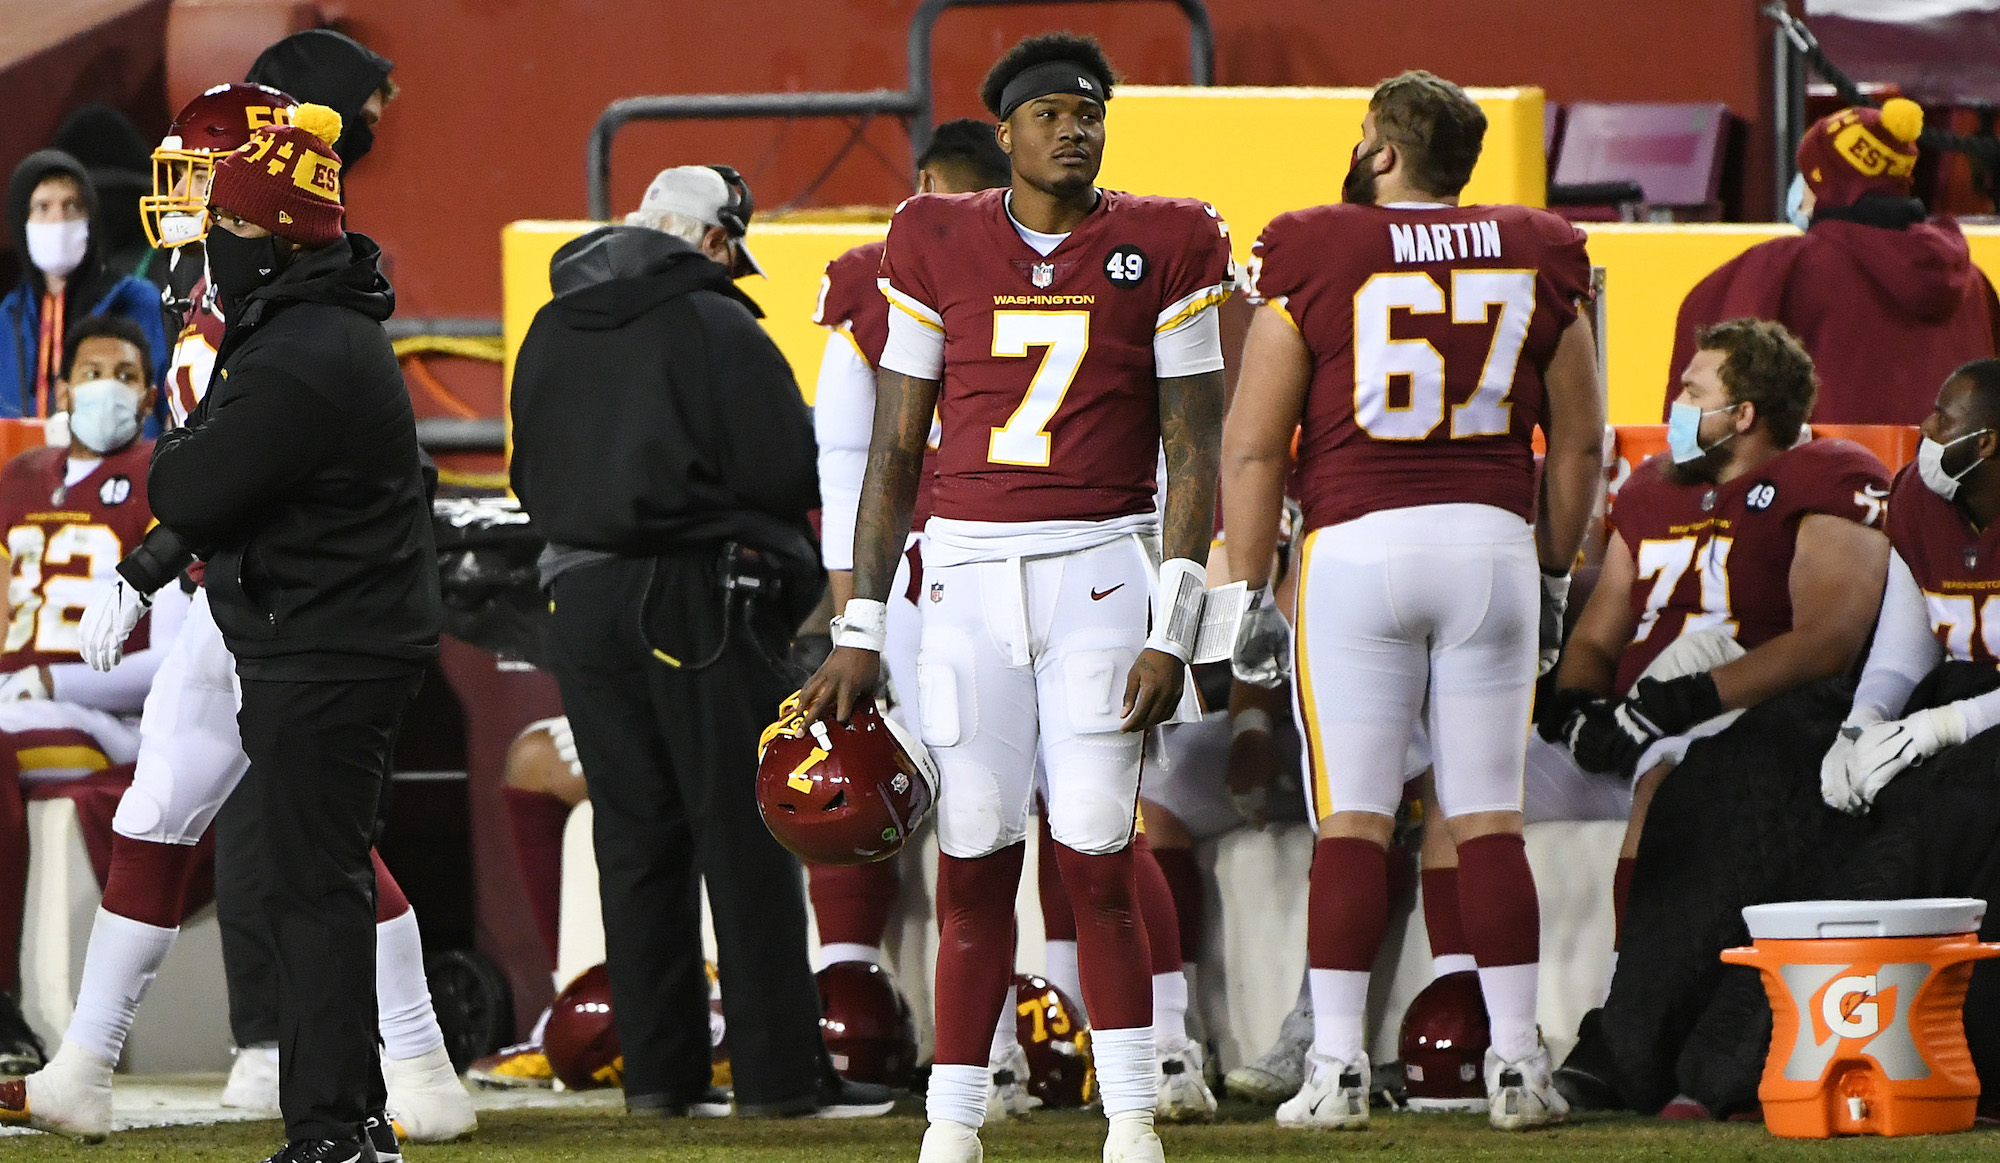 LANDOVER, MARYLAND - DECEMBER 27: Dwayne Haskins #7 of the Washington Football Team reacts on the sideline against the Carolina Panthers during the fourth quarter at FedExField on December 27, 2020 in Landover, Maryland. (Photo by Will Newton/Getty Images)